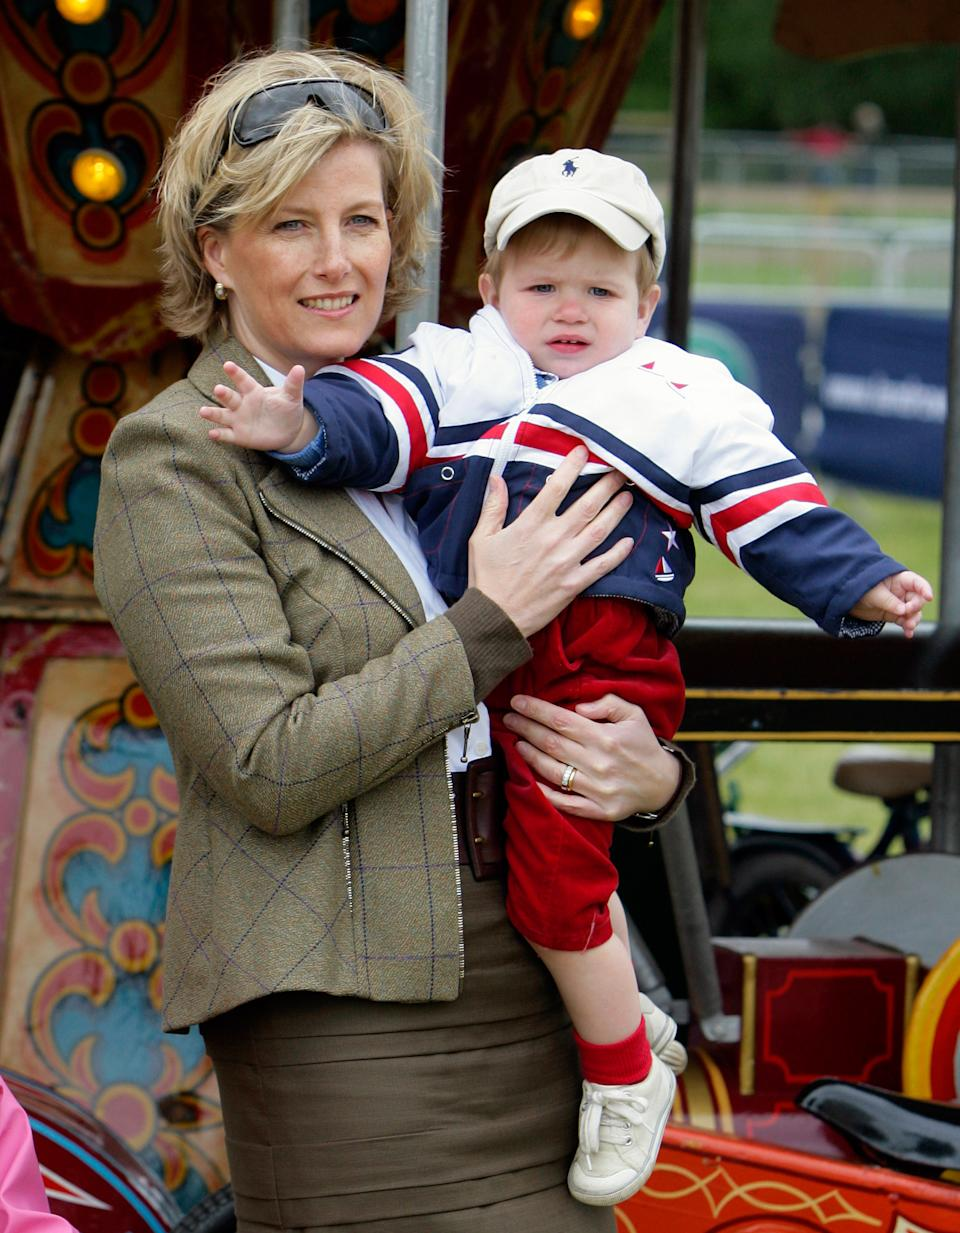 WINDSOR, UNITED KINGDOM - MAY 16: (EMBARGOED FOR PUBLICATION IN UK NEWSPAPERS UNTIL 48 HOURS AFTER CREATE DATE AND TIME) Sophie, Countess of Wessex and son James, Viscount Severn attend day 5 of the Royal Windsor Horse Show on May 16, 2009 in Windsor, England. (Photo by Indigo/Getty Images)